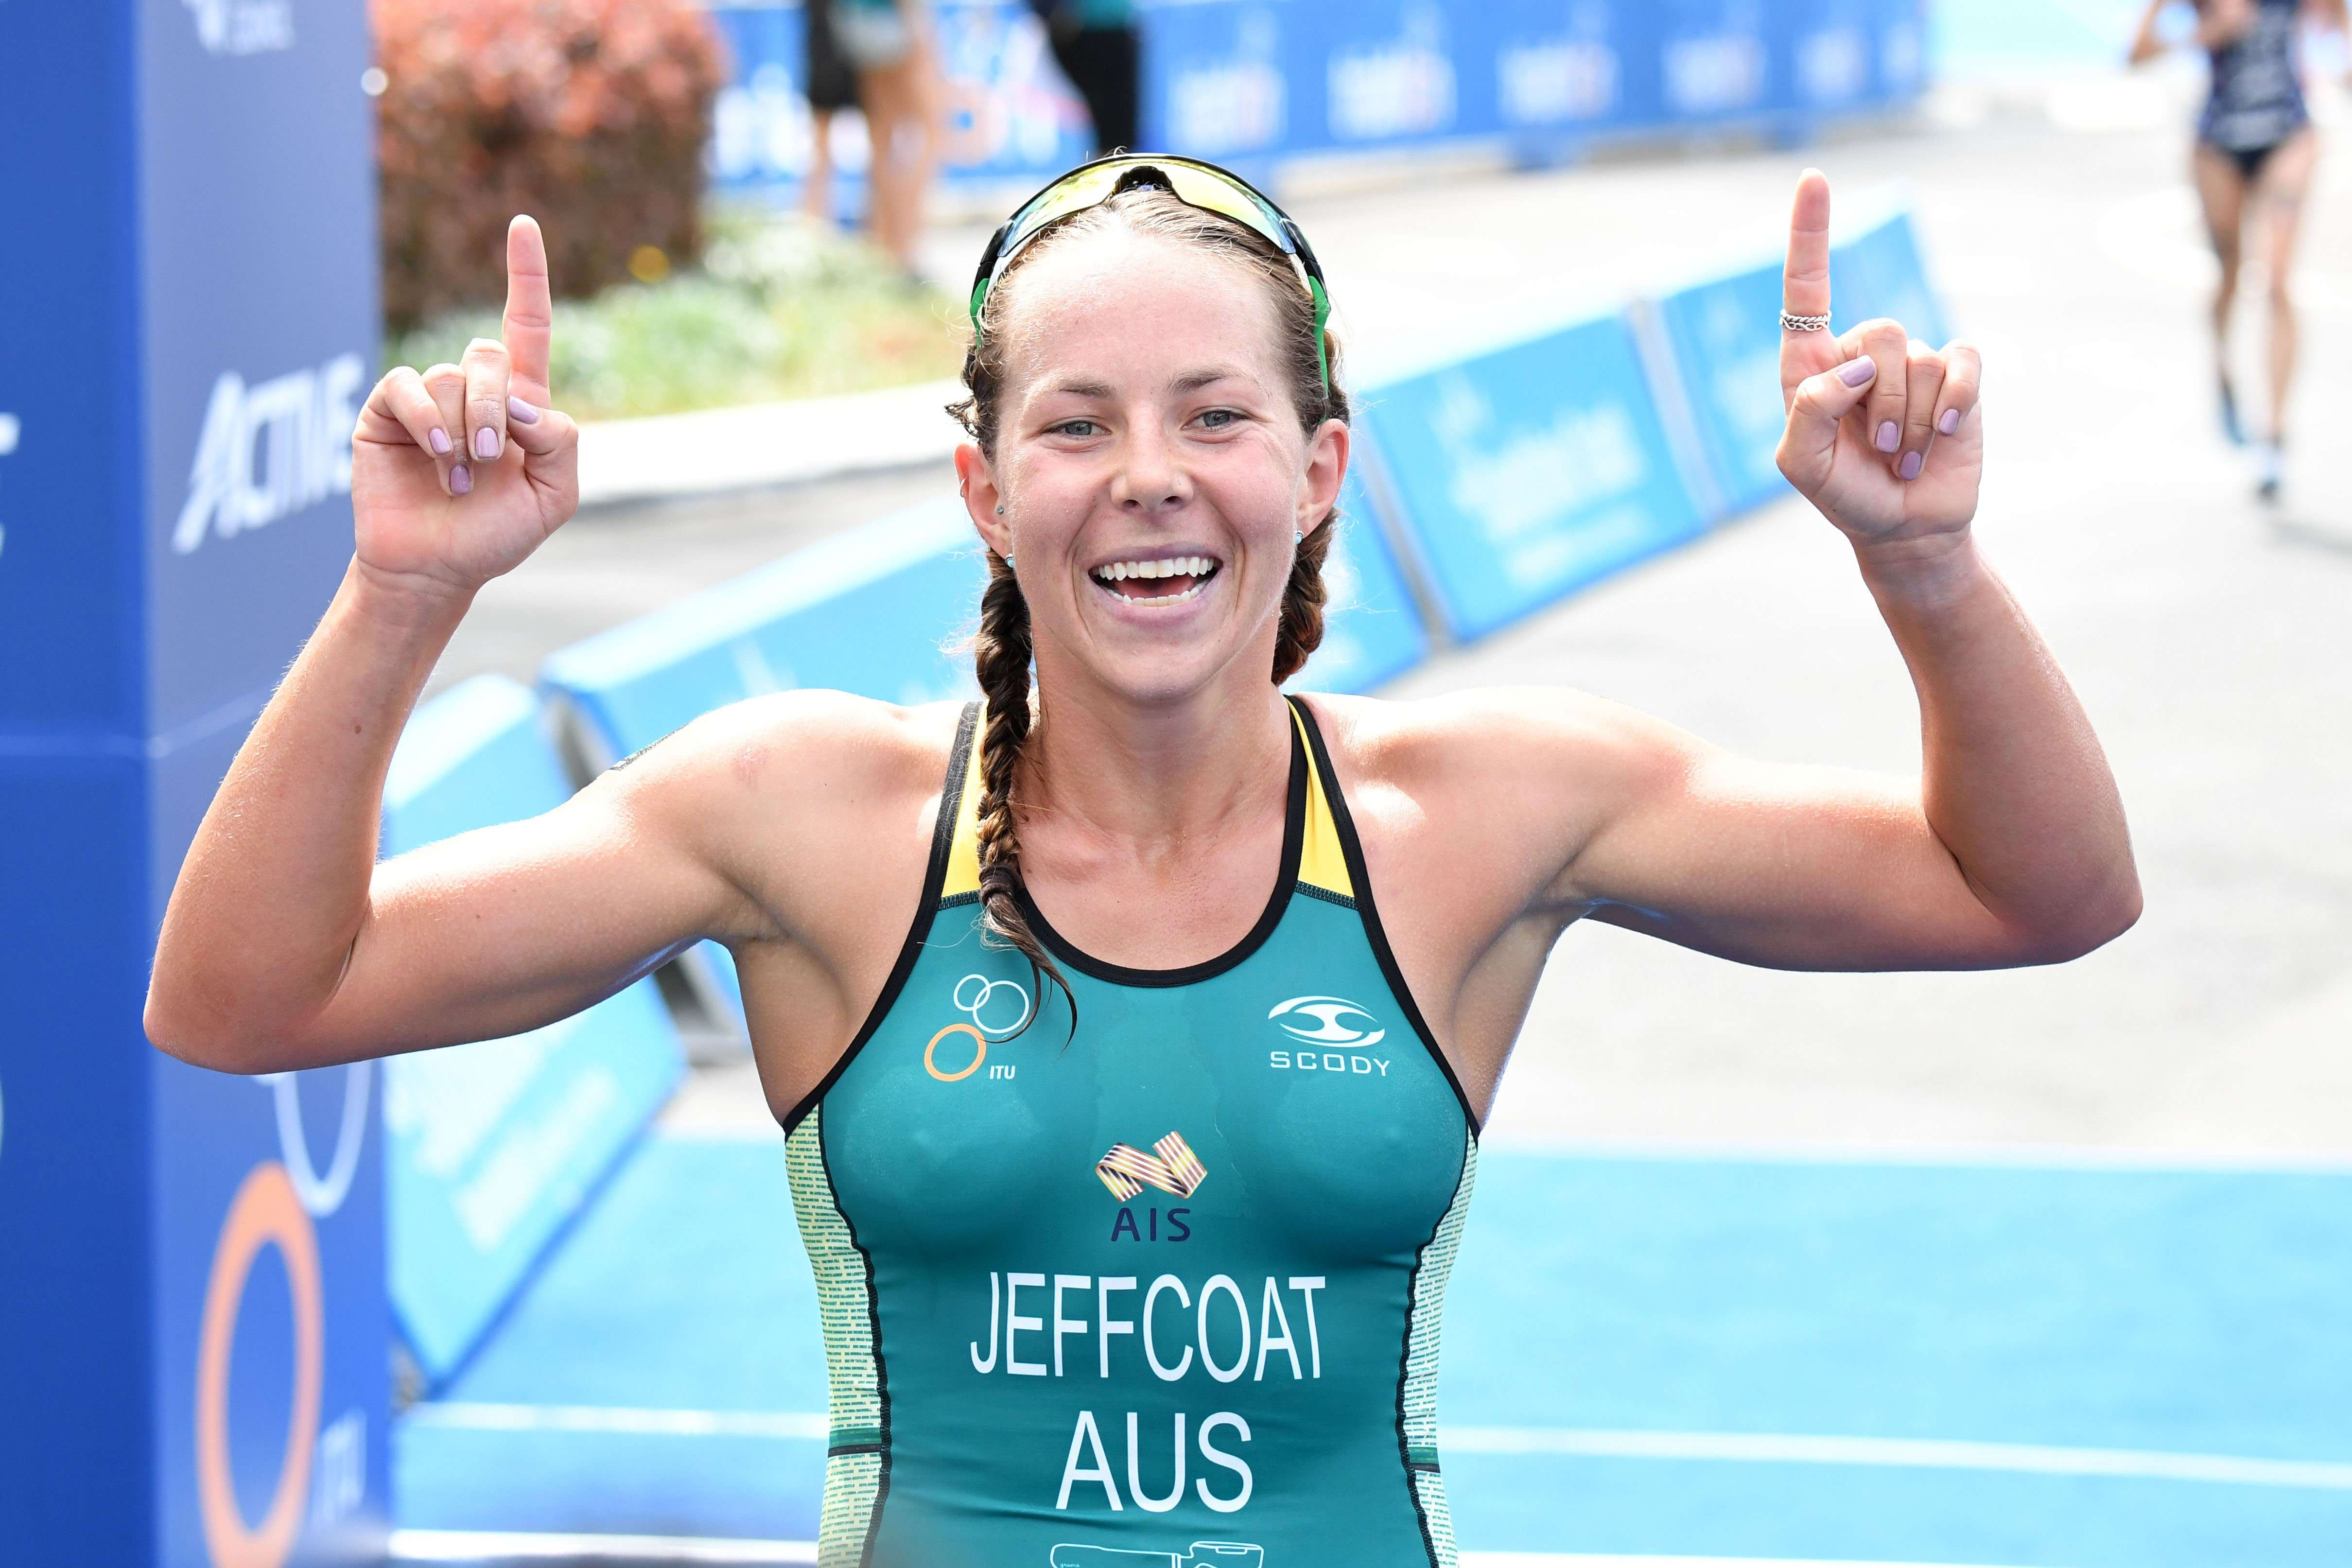 Emma Jeffcoat - ITU Mooloolaba World Cup